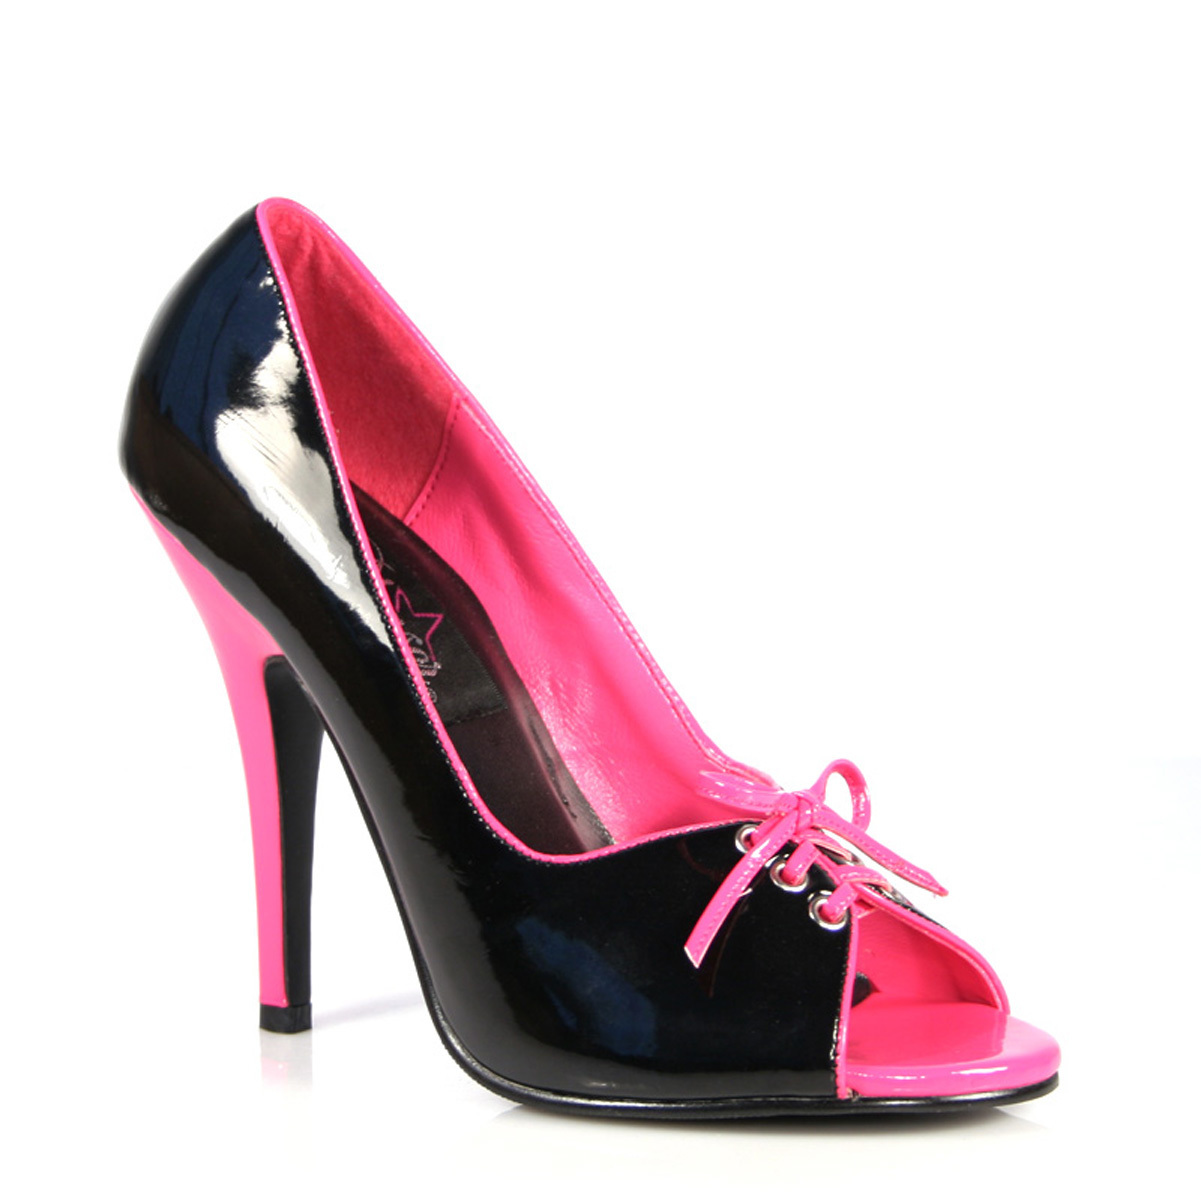 Womens Peep Toe Pumps Lace Up Shoes Hot Pink Black Patent 5 Inch Stiletto Heels